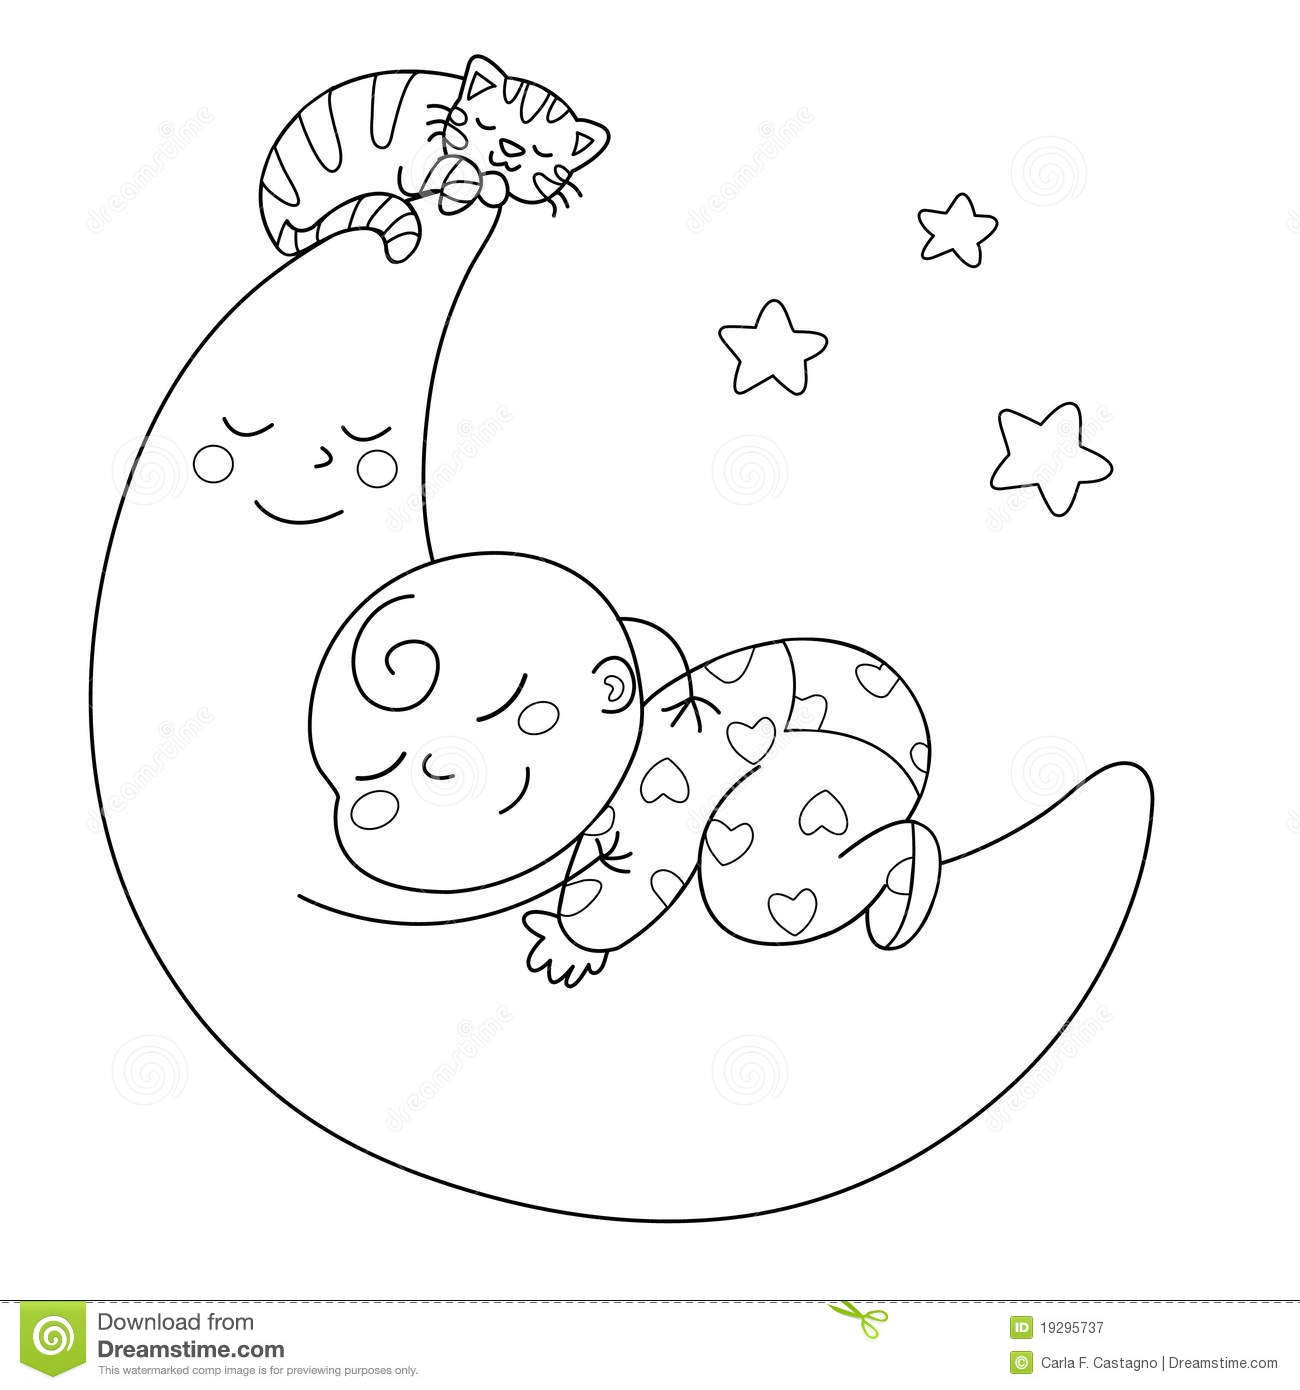 Sleeping Baby Royalty Free Stock Photography - Image: 19295737